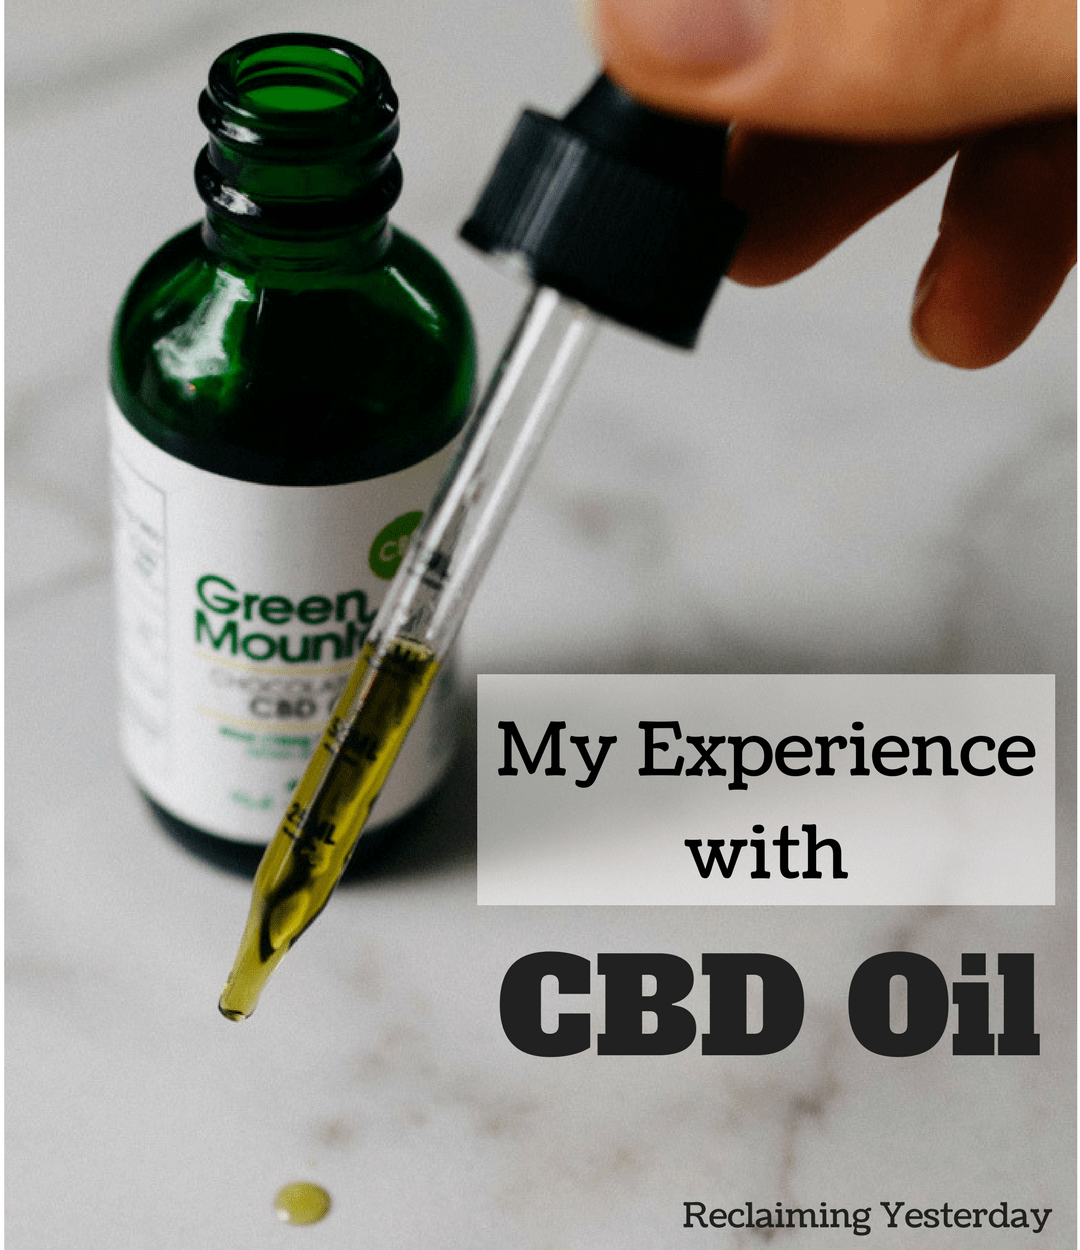 My Experience with CBD Oil - Reclaiming Yesterday